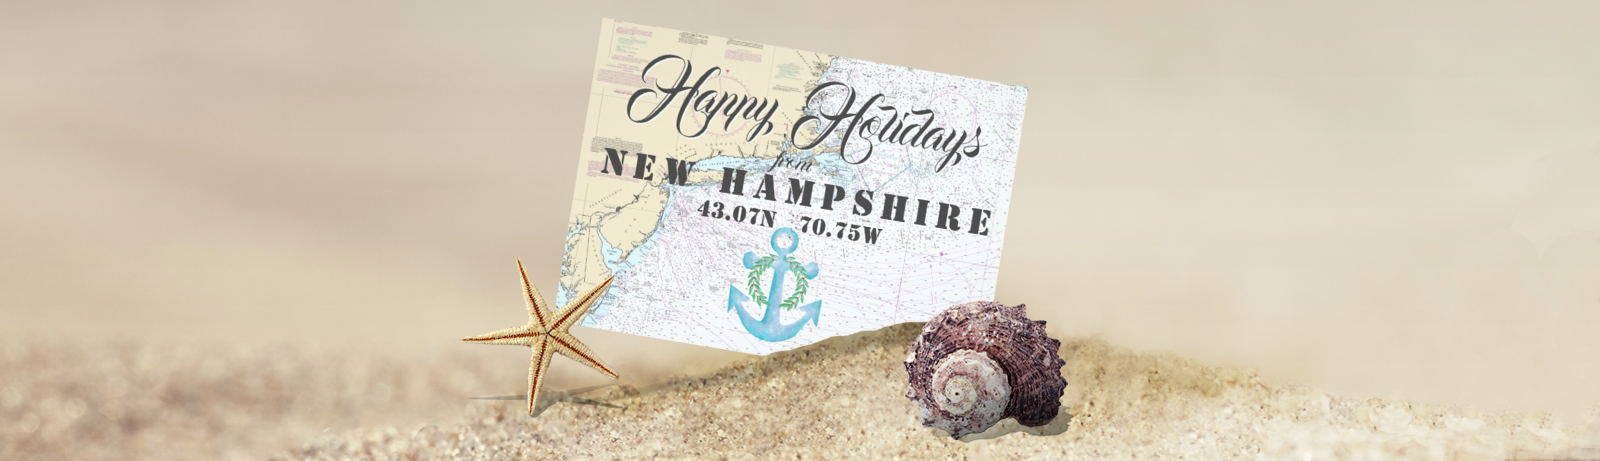 Tropical & Nautical Holiday Cards - The Nautical Boutique Co.